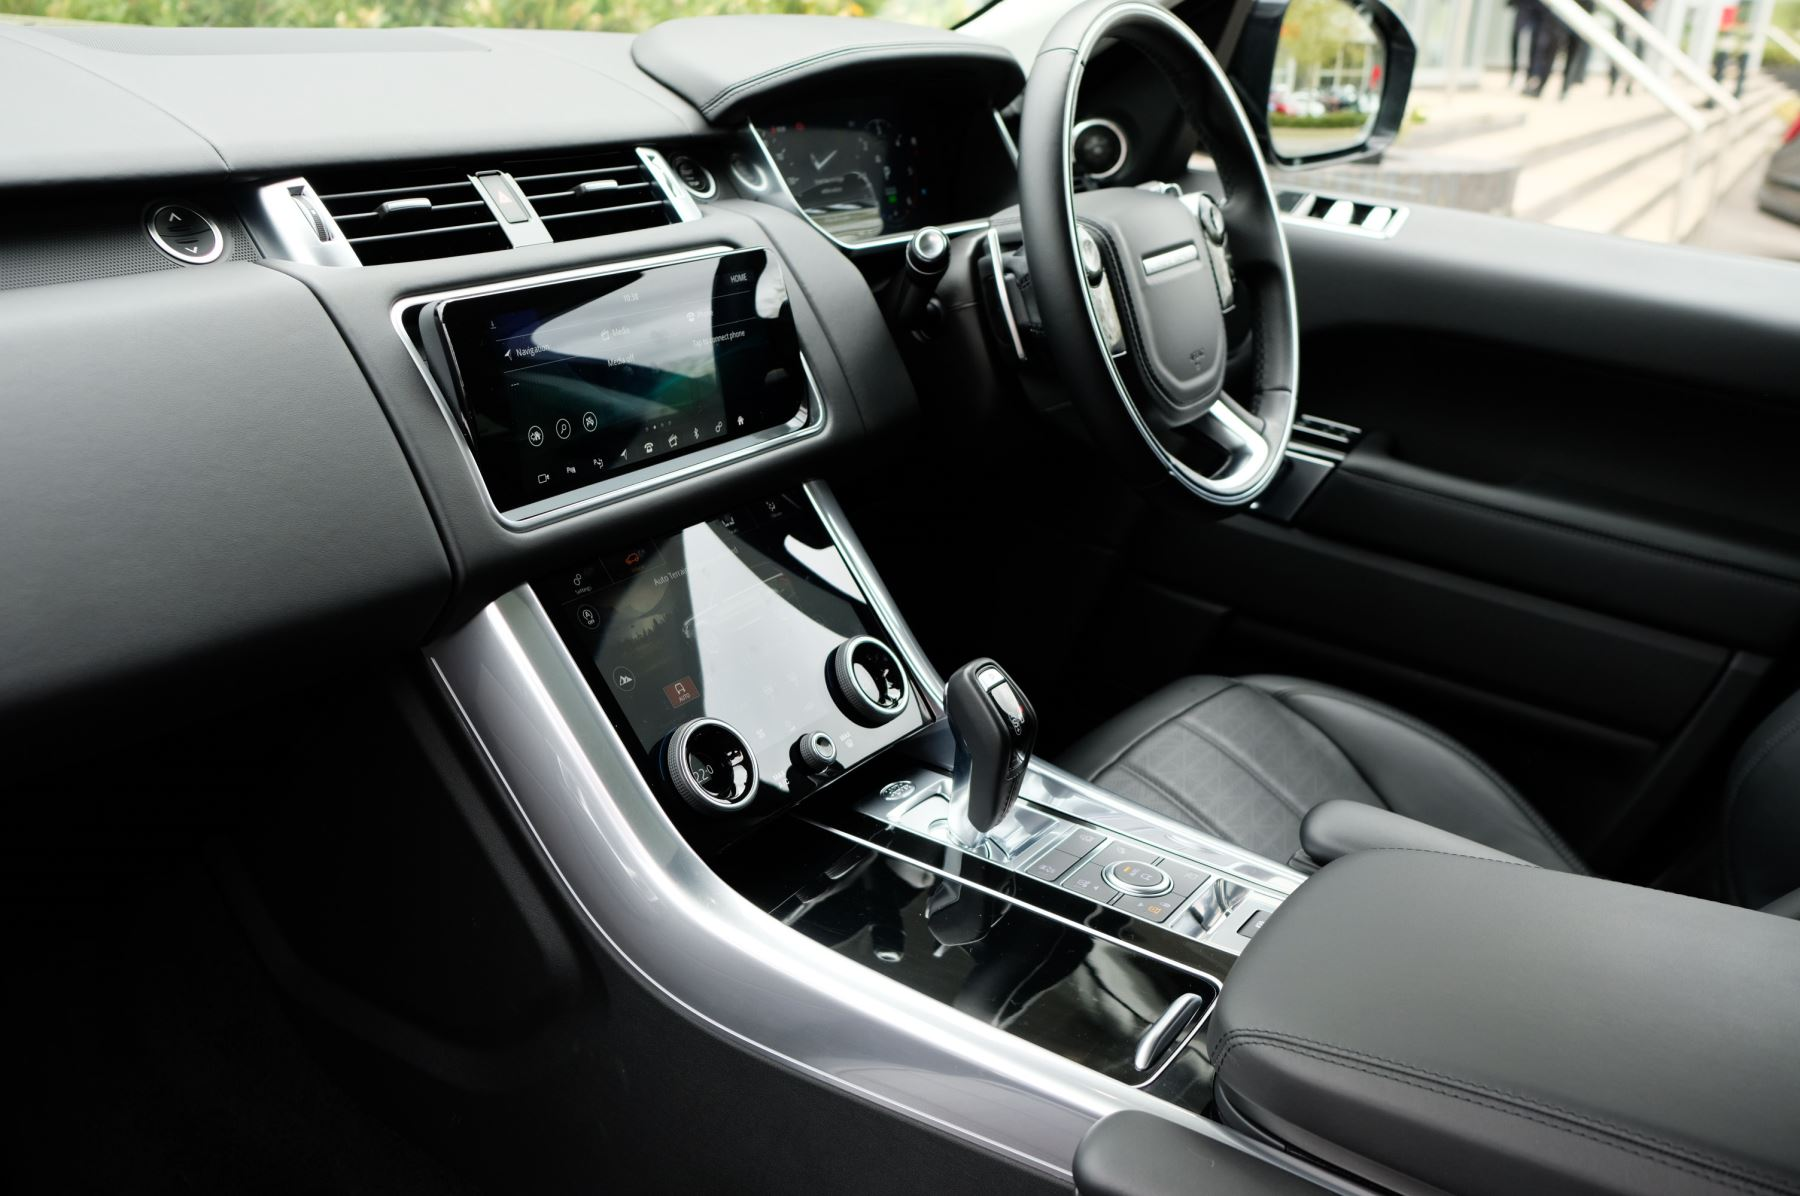 Land Rover Range Rover Sport 3.0 SDV6 Autobiography Dynamic 5dr [7 Seat] - Rear Seat Entertainment - 21 Inch Alloys image 19